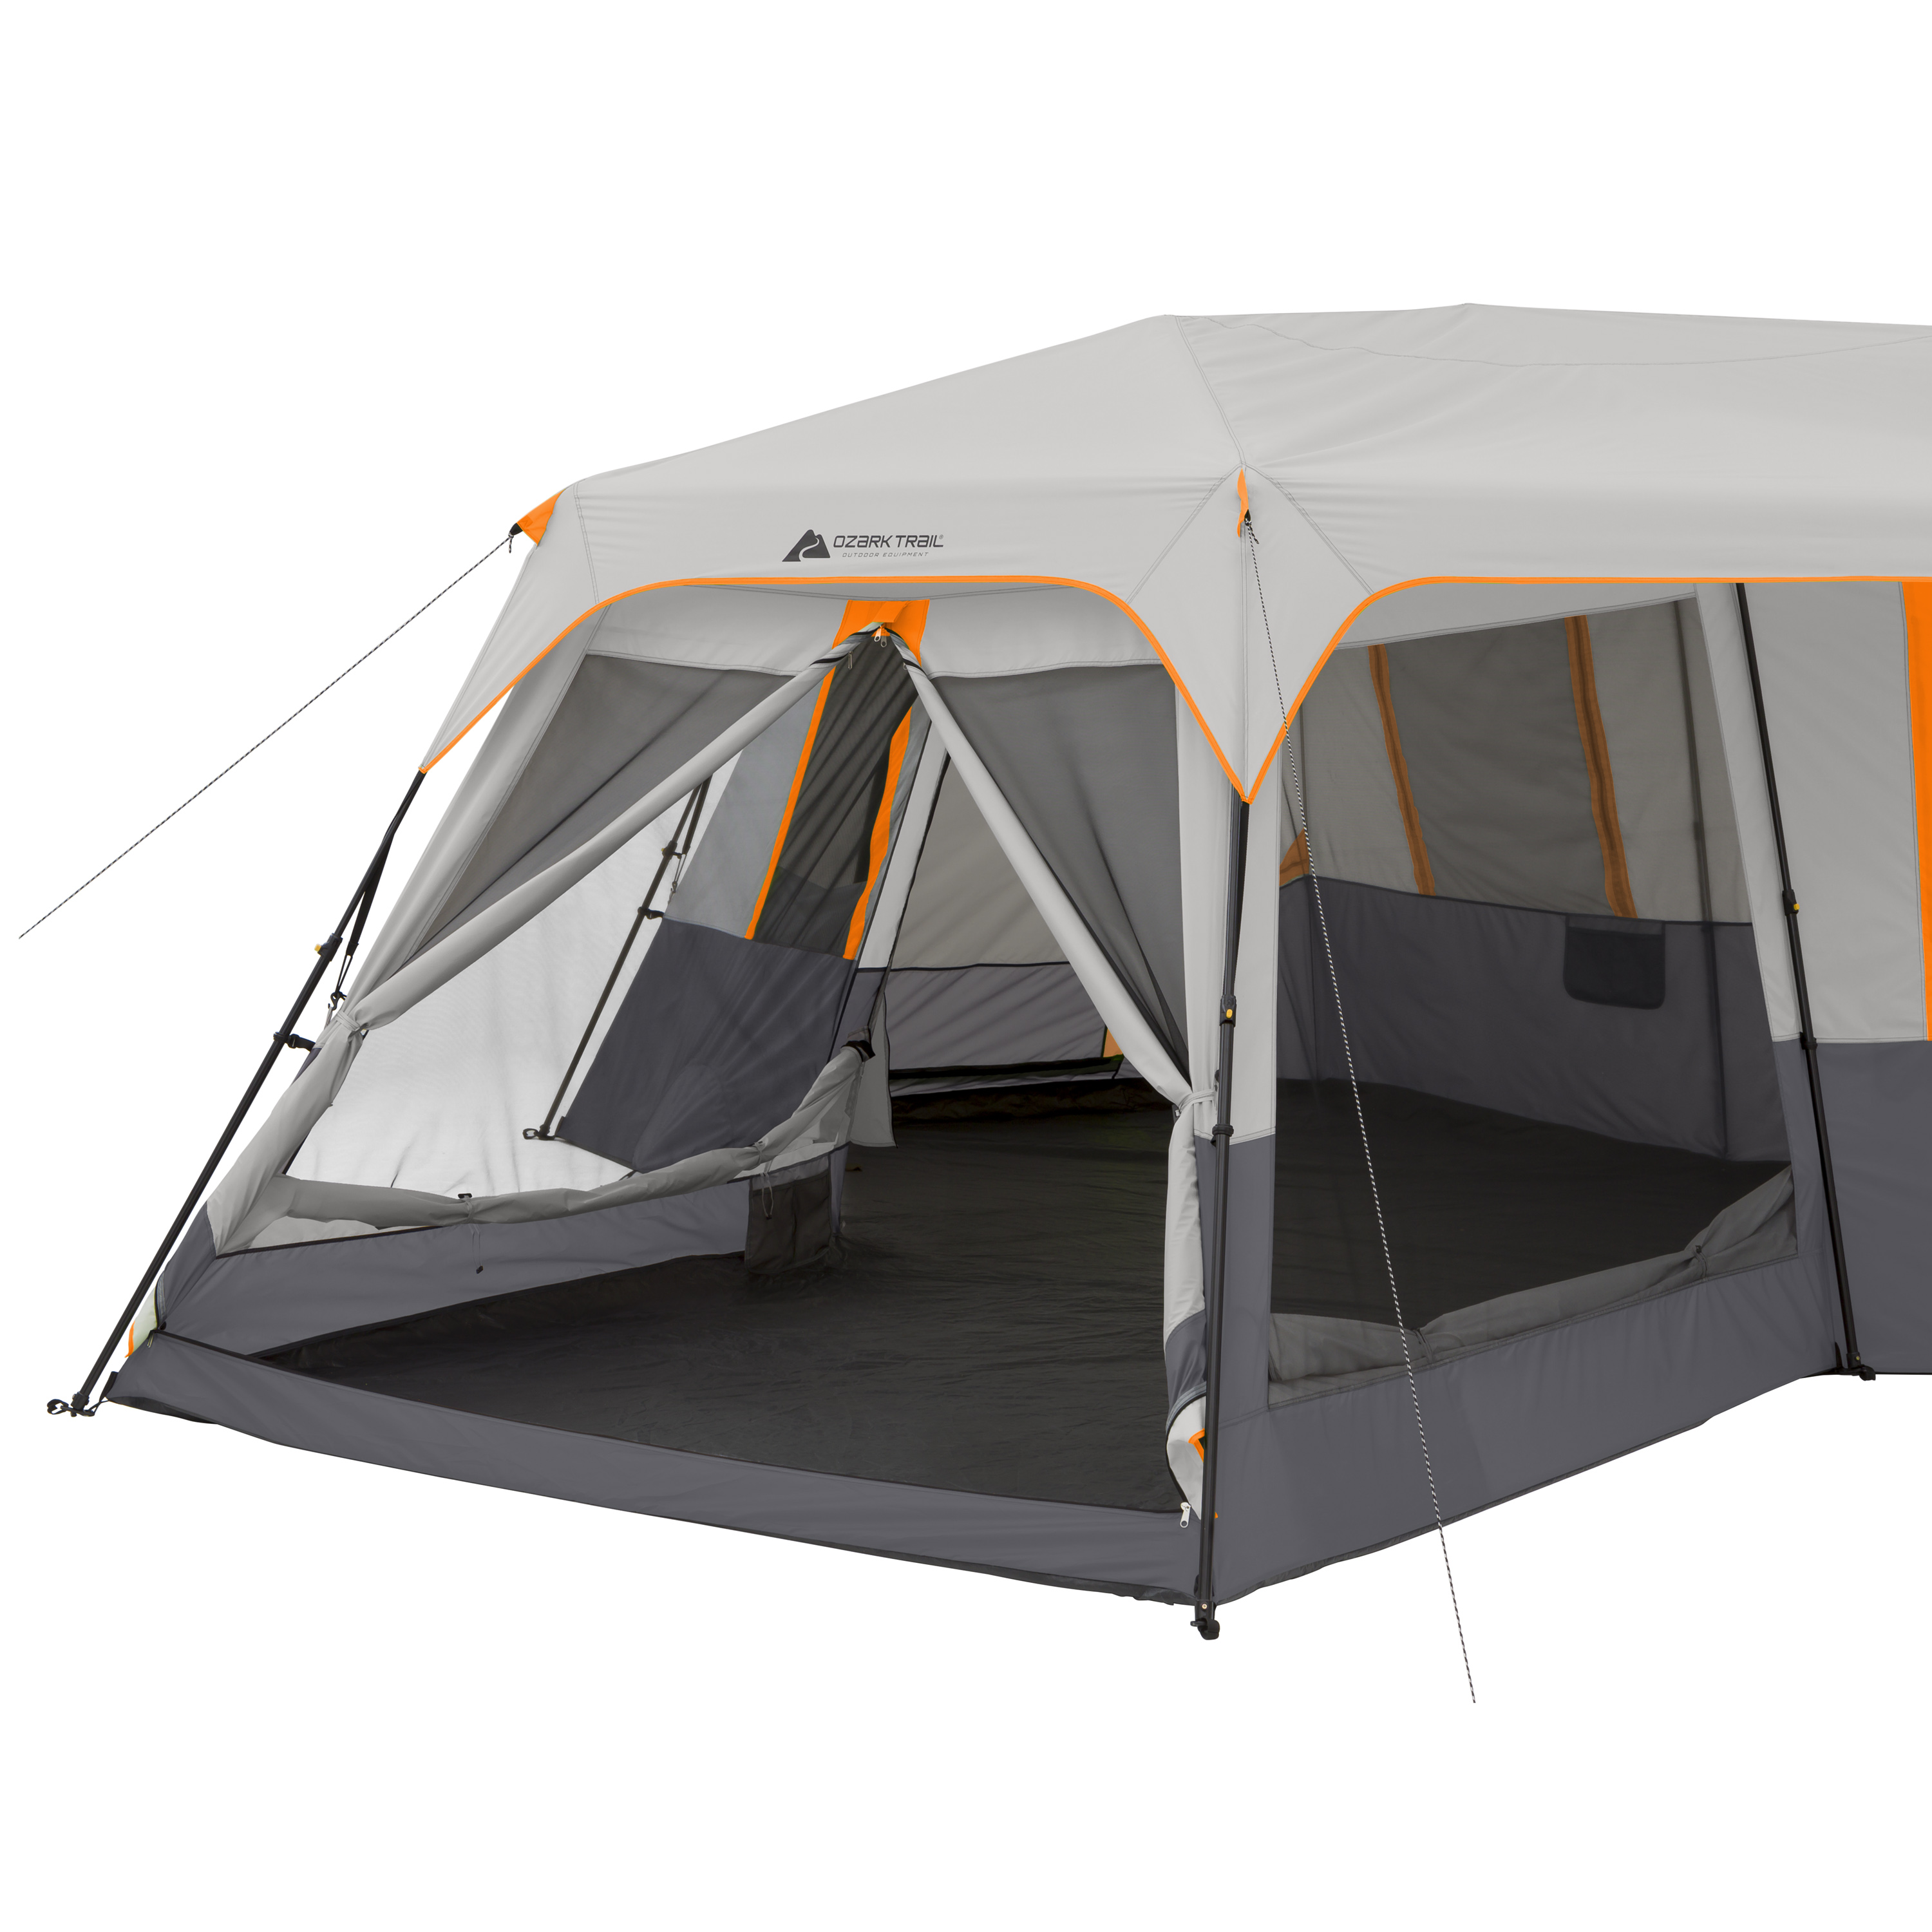 Ozark Trail 12-Person 3-Room Instant Cabin Tent with Screen Room Image 3  sc 1 st  Walmart & Ozark Trail 12-Person 3-Room Instant Cabin Tent with Screen Room ...